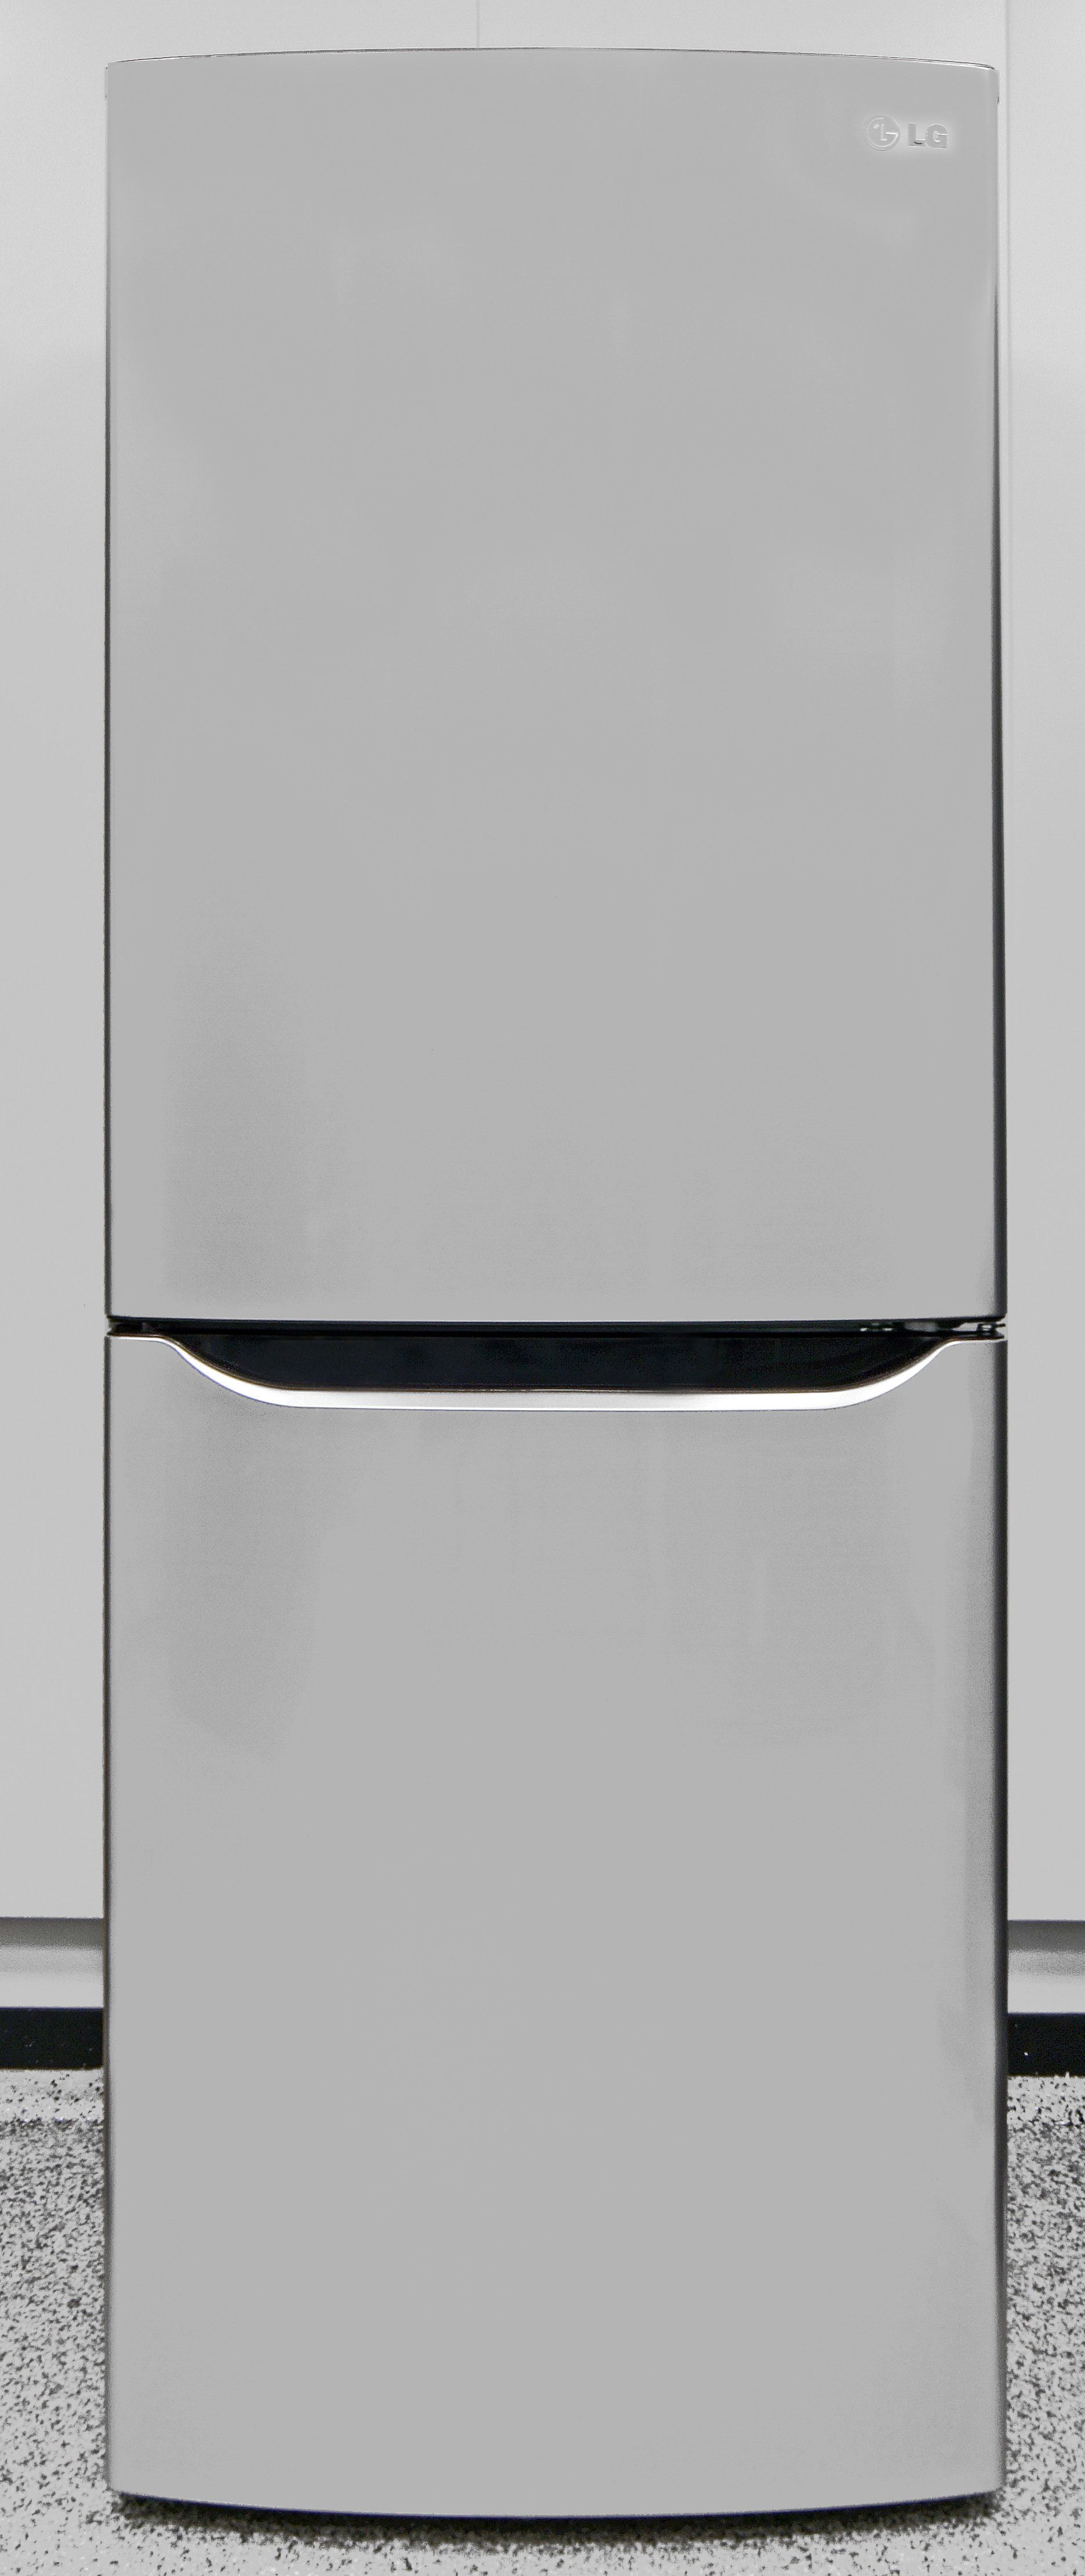 The smooth, stainless finish gives the affordable LG LBN10551PV a high-end feel.